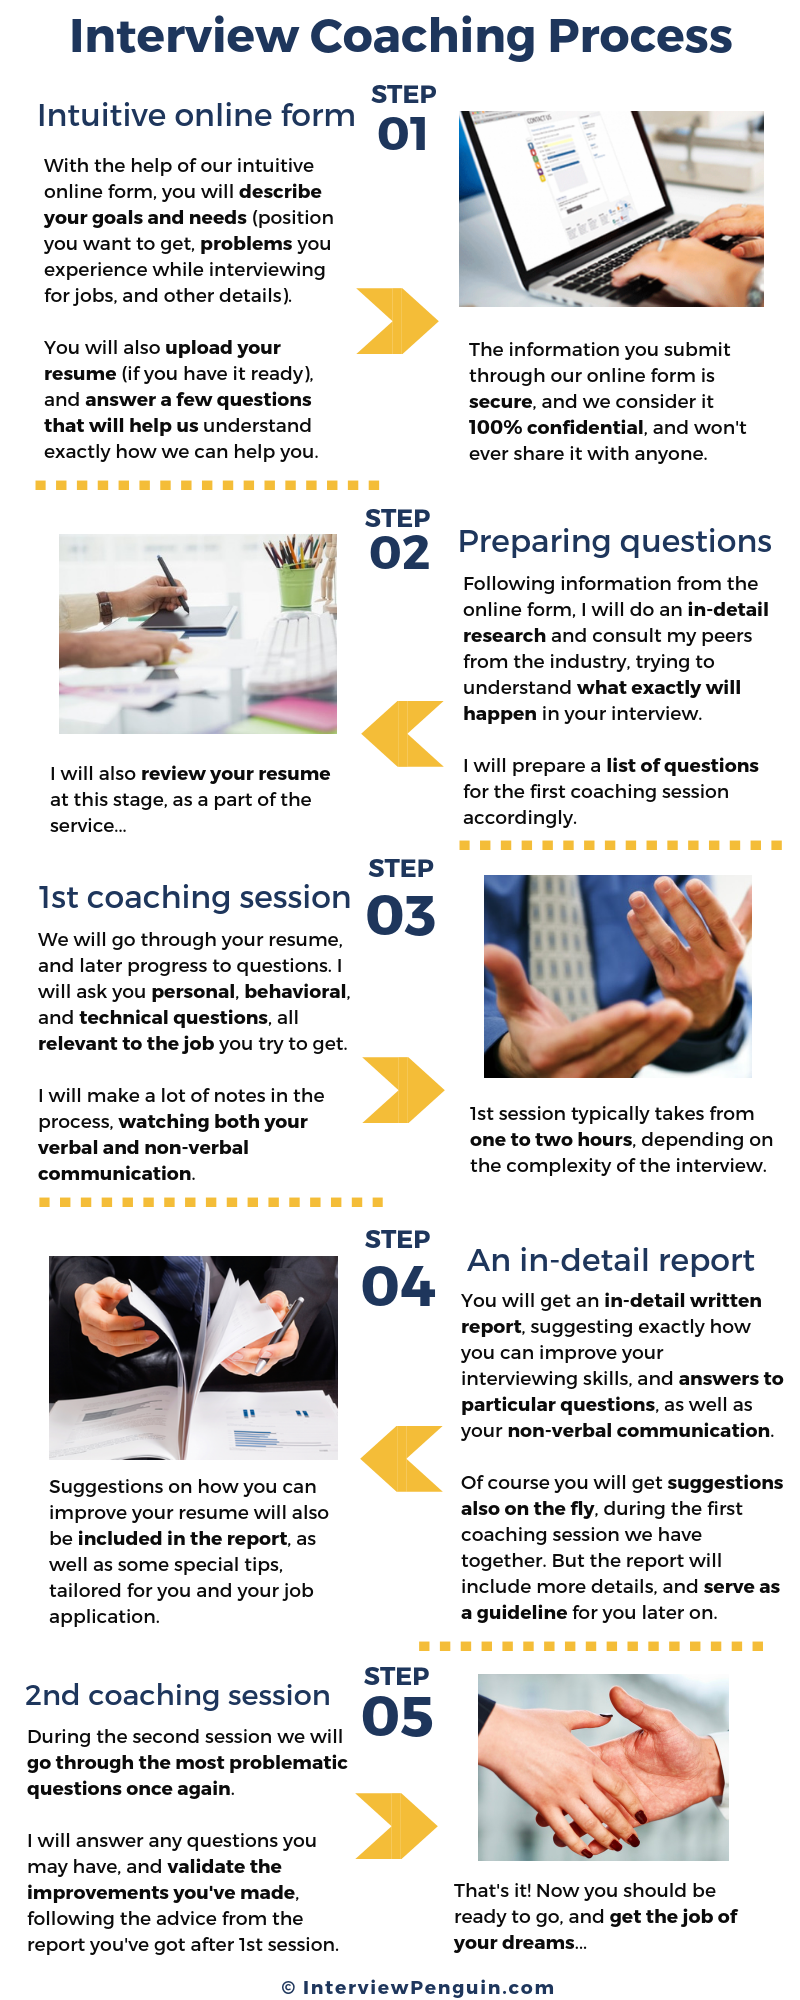 Interview coaching process described in detail